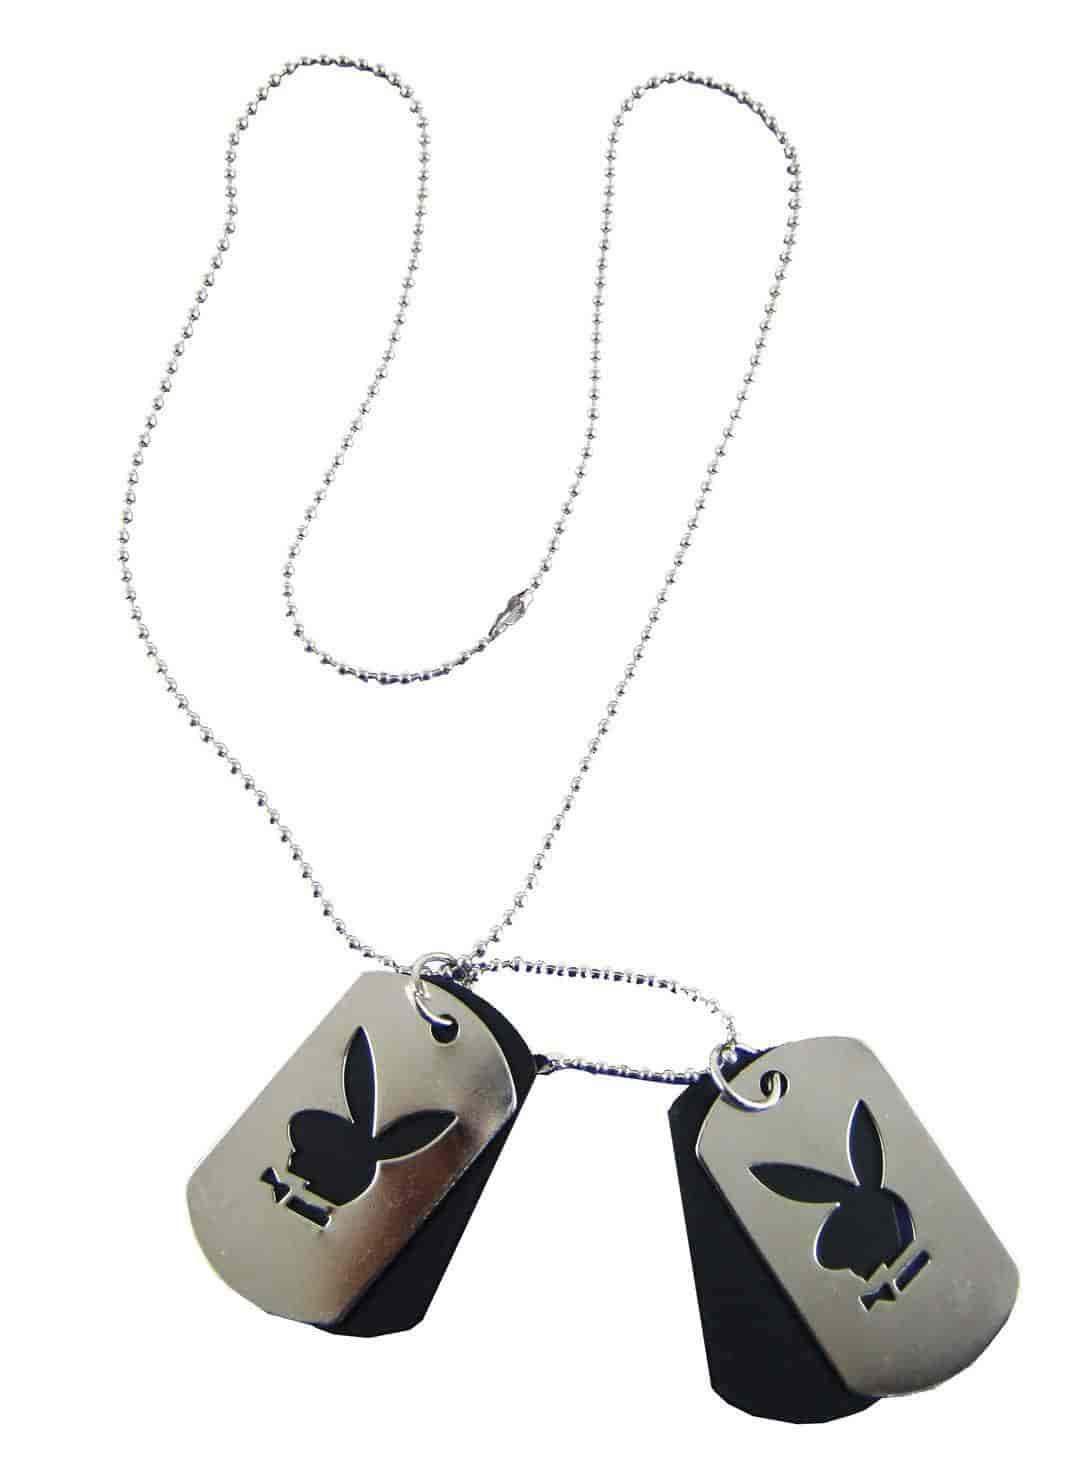 eshoppee-Designer-Dog-Tags-for-Men-Women-Stainless-Steel-Shiny-Double-Locket-Pendant-with-Chain-Necklace-Silver